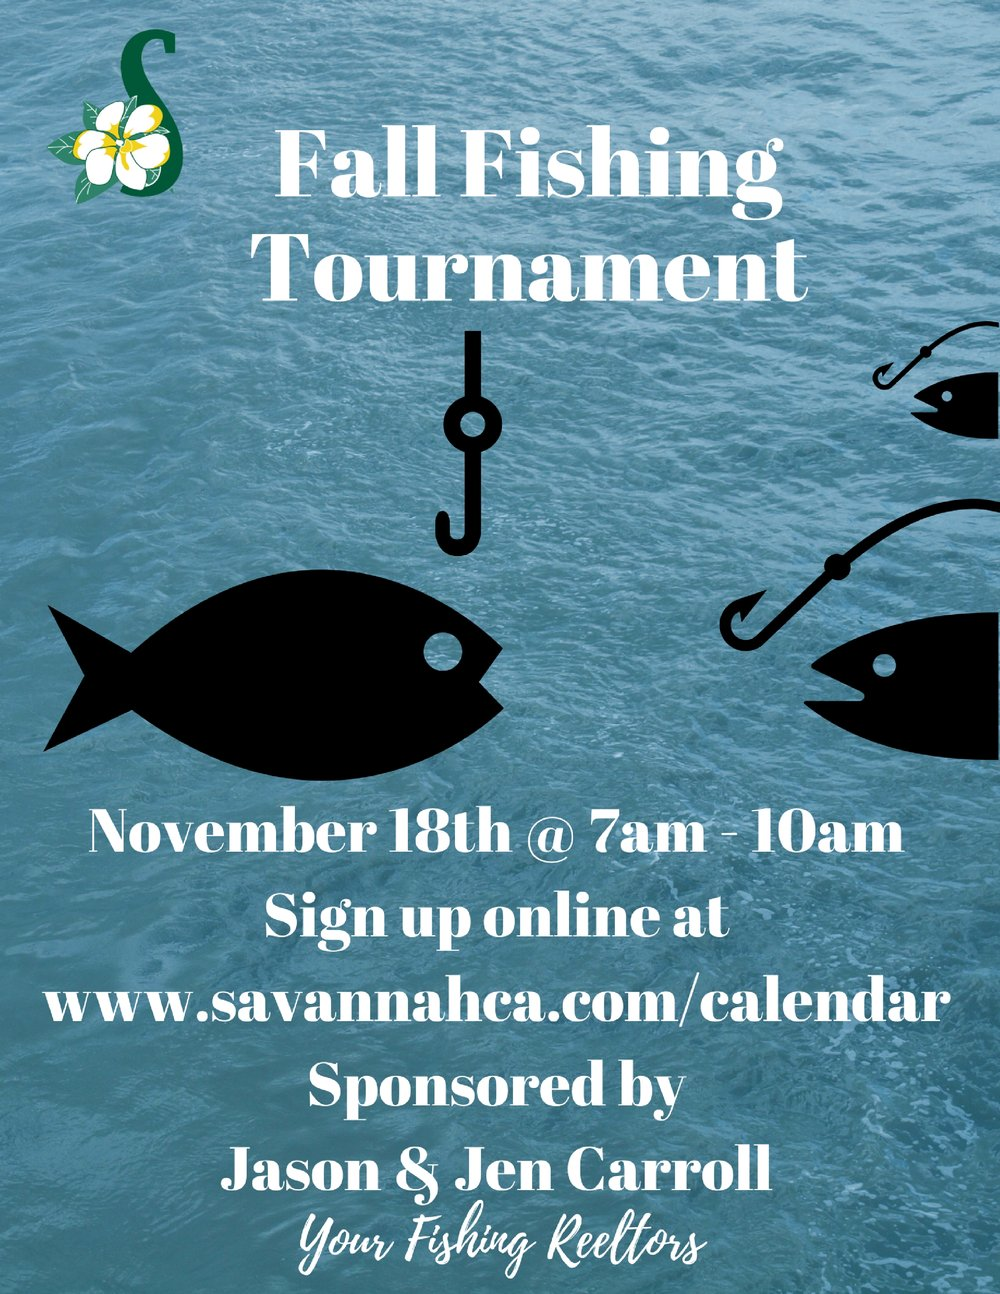 For pictures of our last tournament, click  here